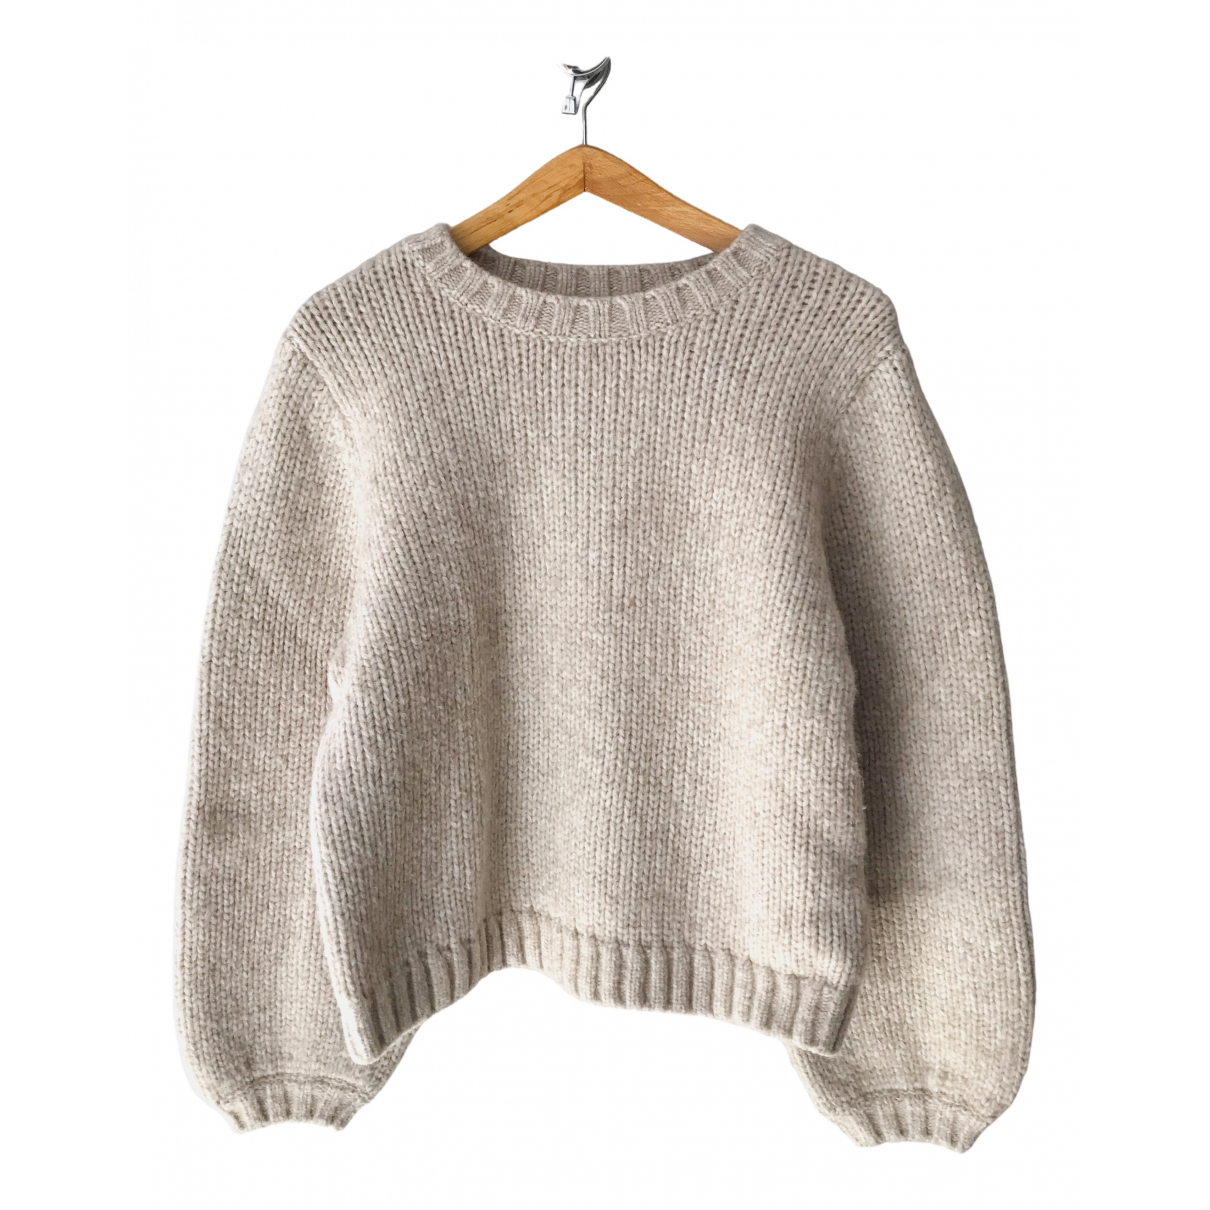 & Other Stories \N Pullover in  Ecru Wolle